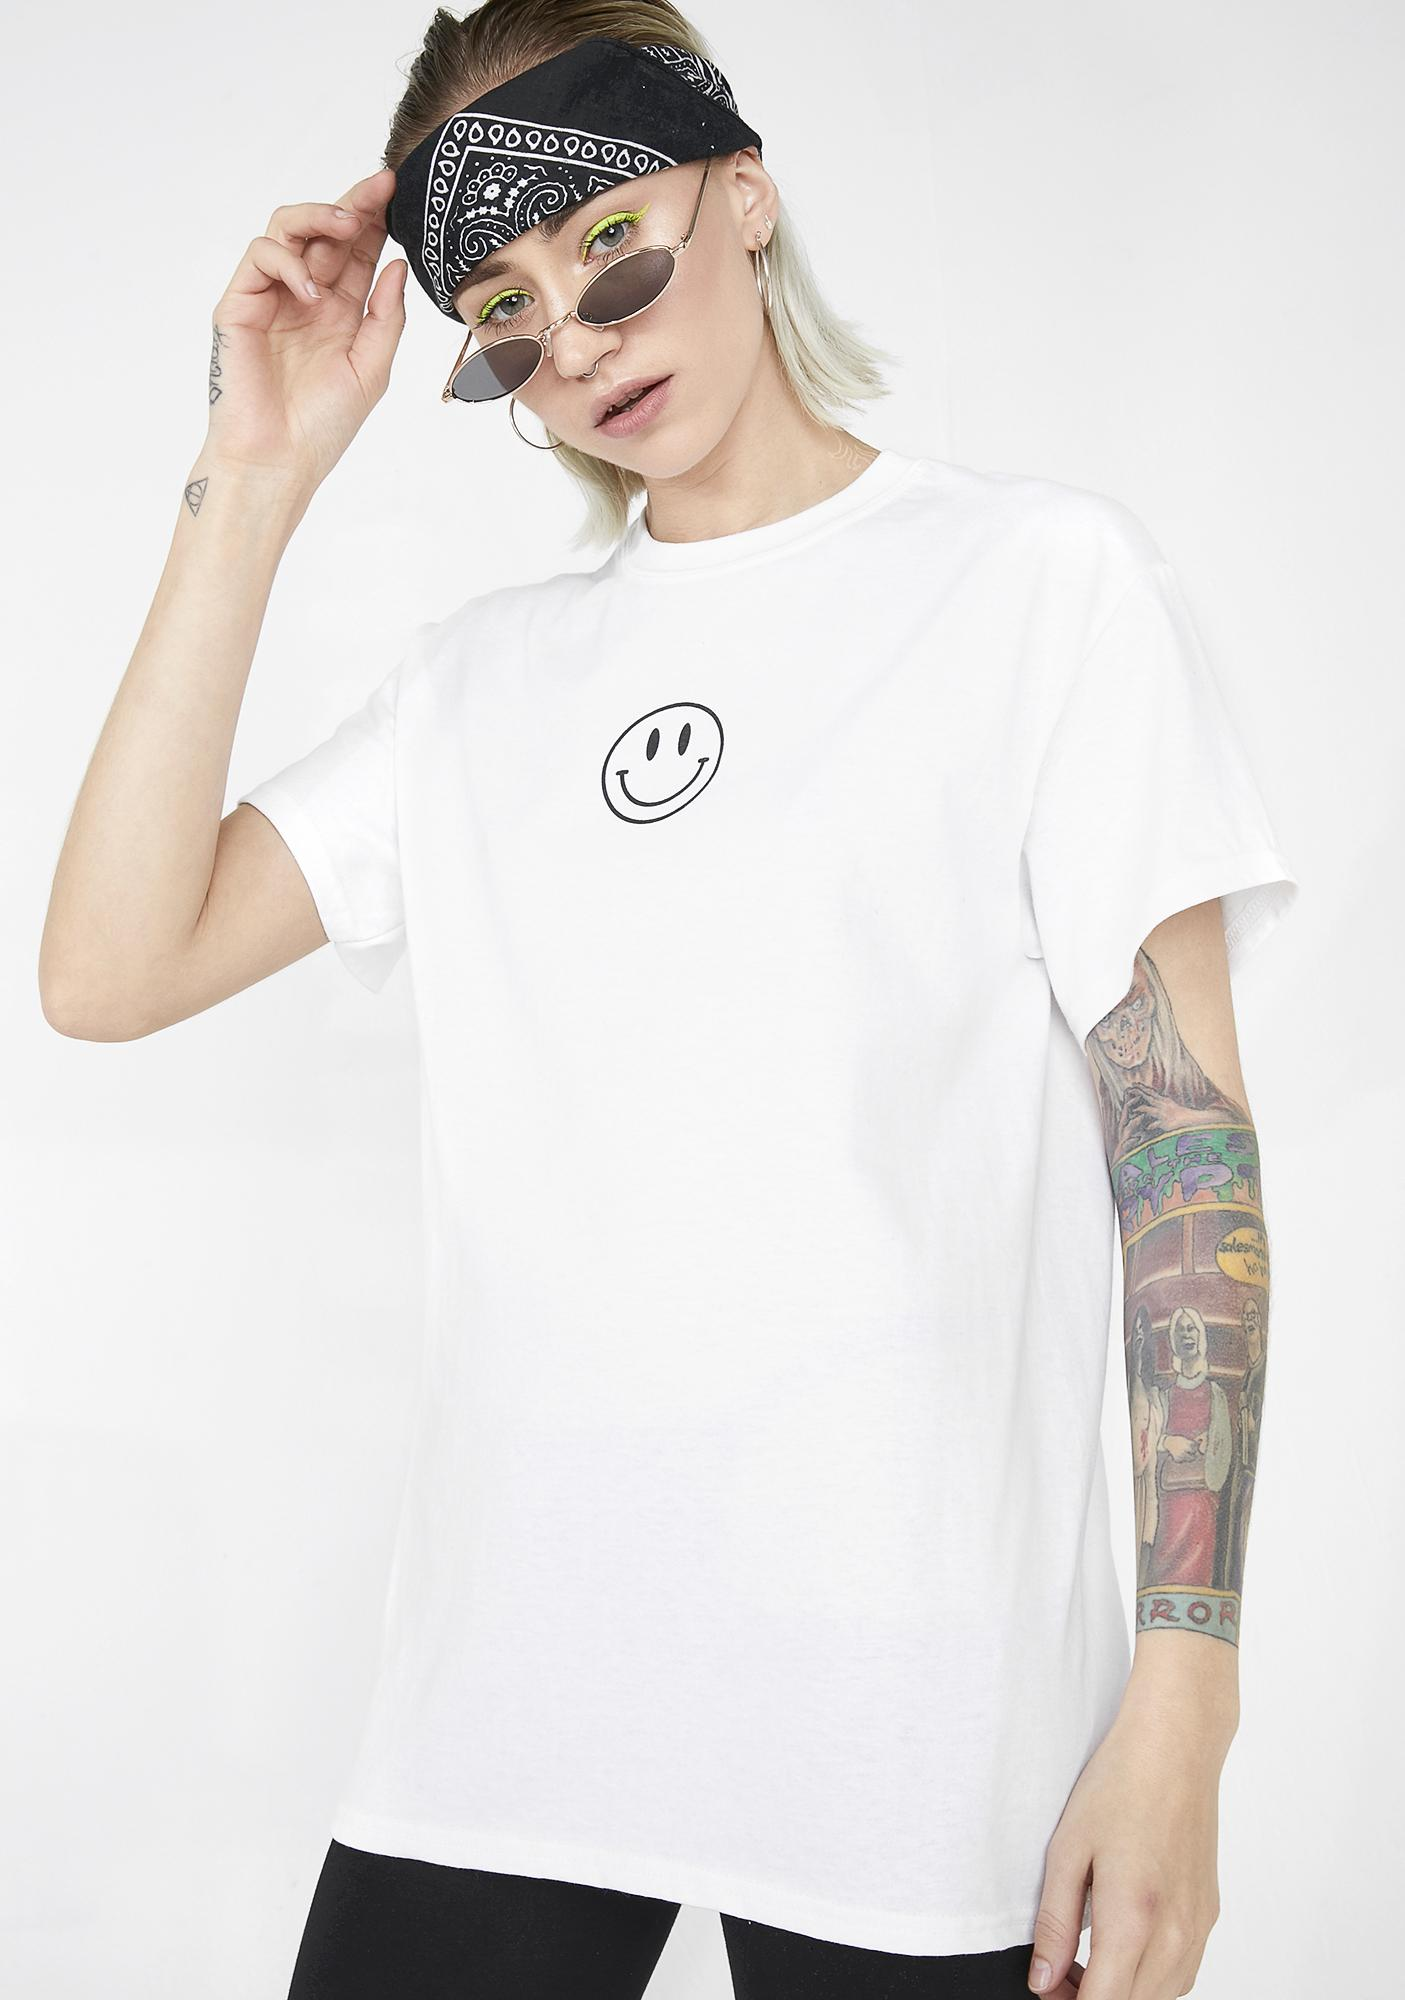 Illustrated People Everything Will Be Ok Smiley Tee